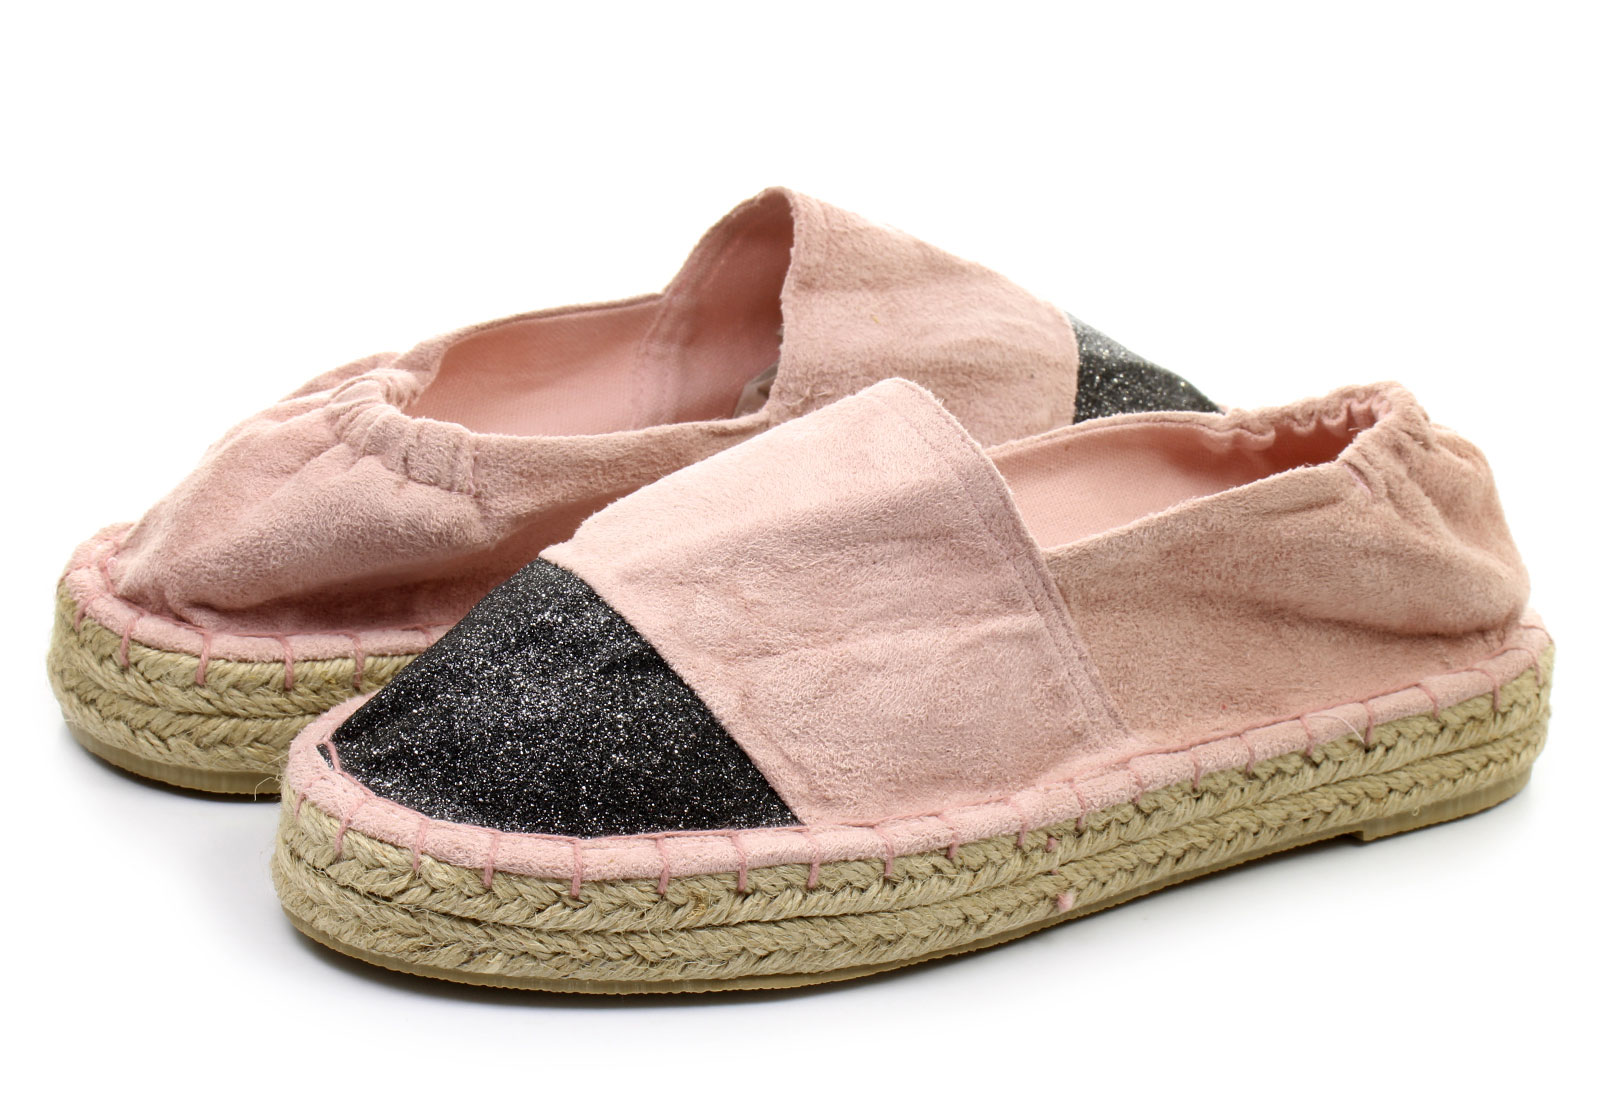 Kitten Shoes Chanel Chanel Nud Online Shop For